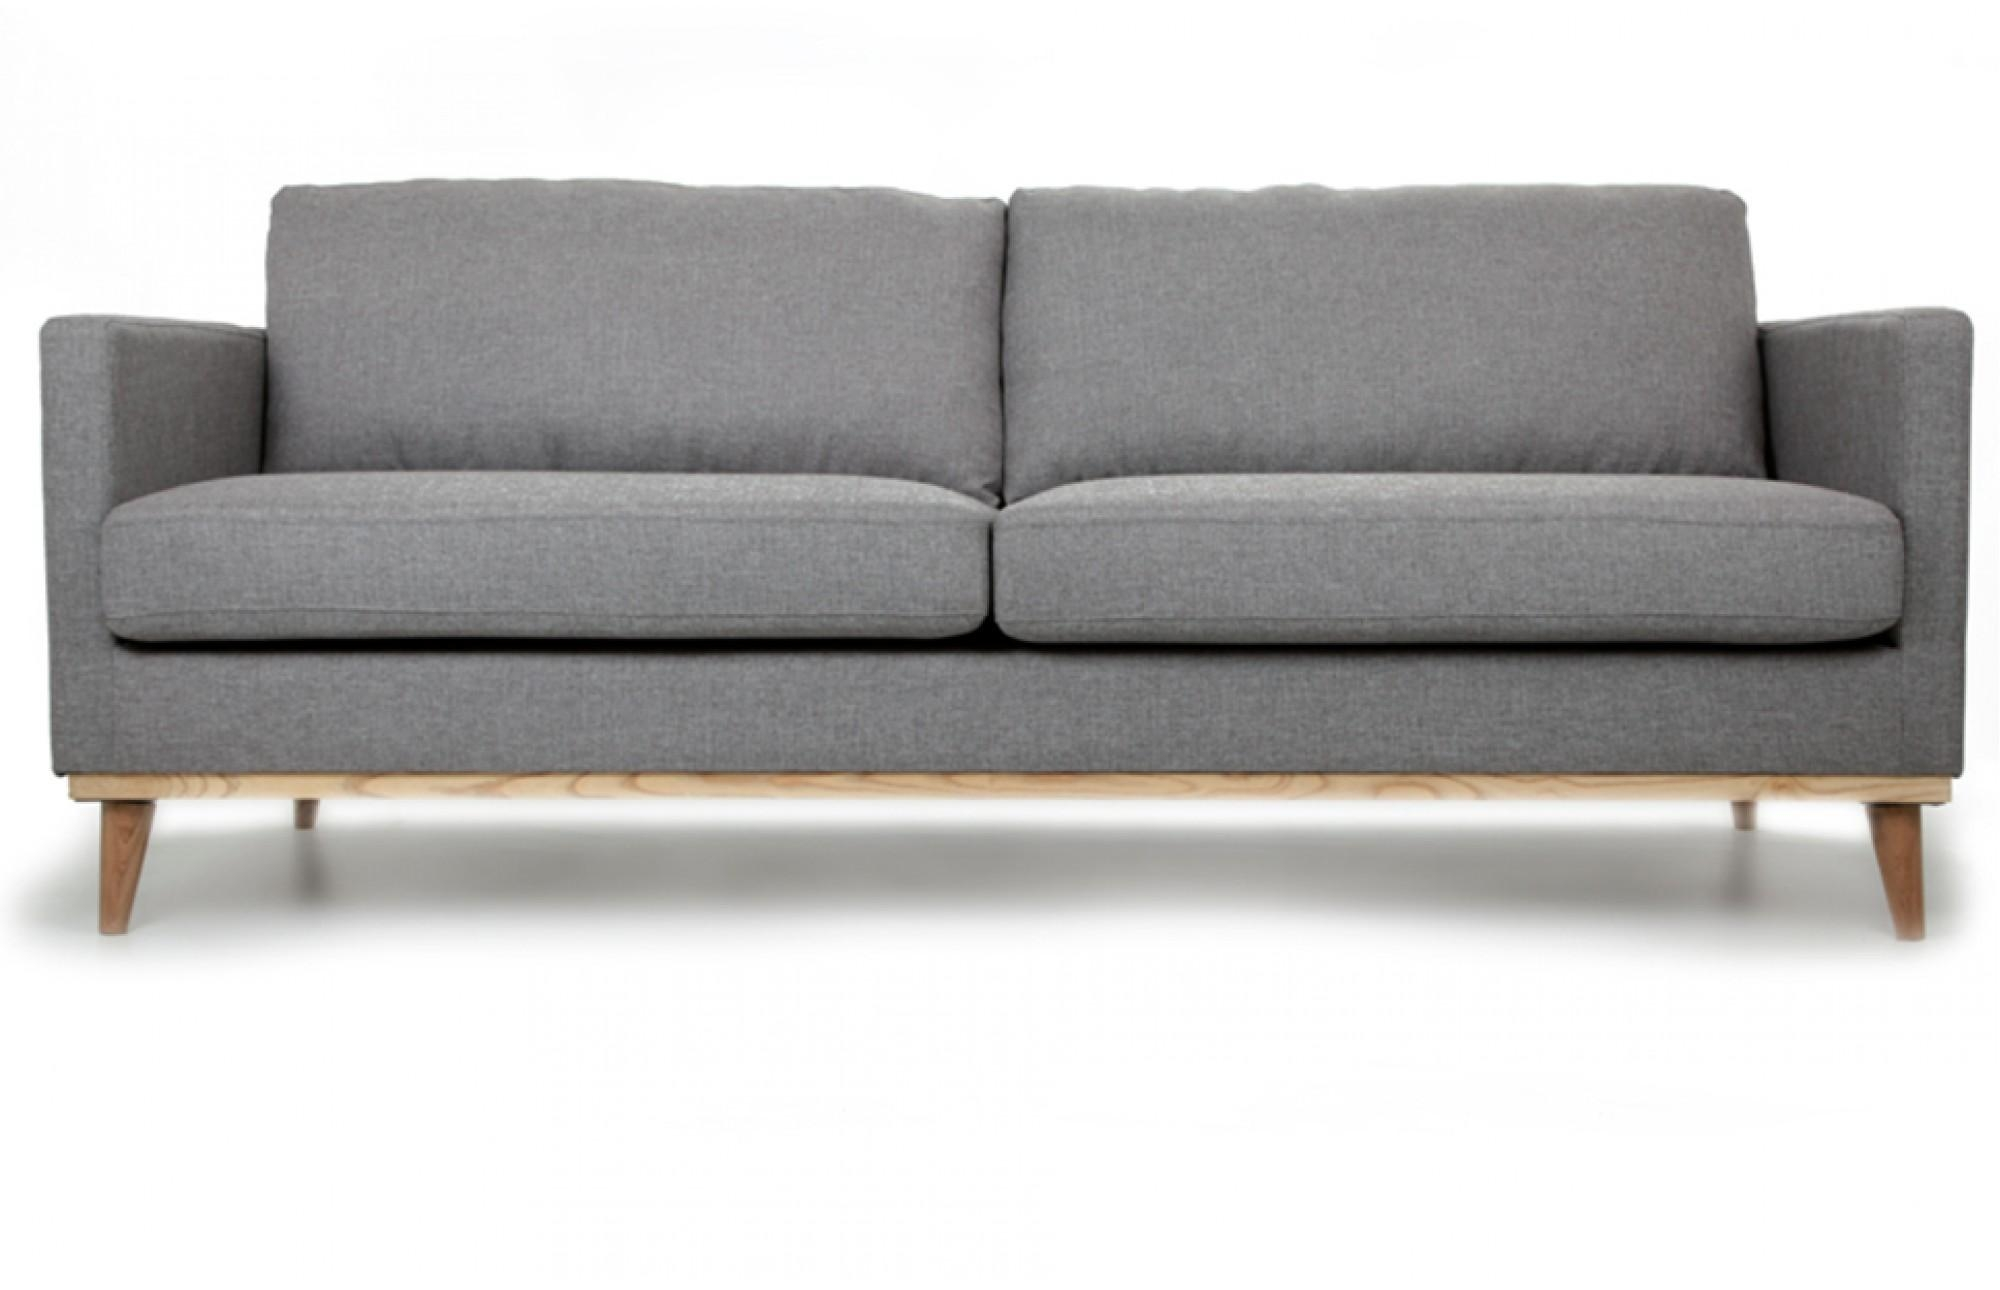 Jefferson Three Seater Sofa In Light Grey With Oak Legs - Out And inside Three Seater Sofas